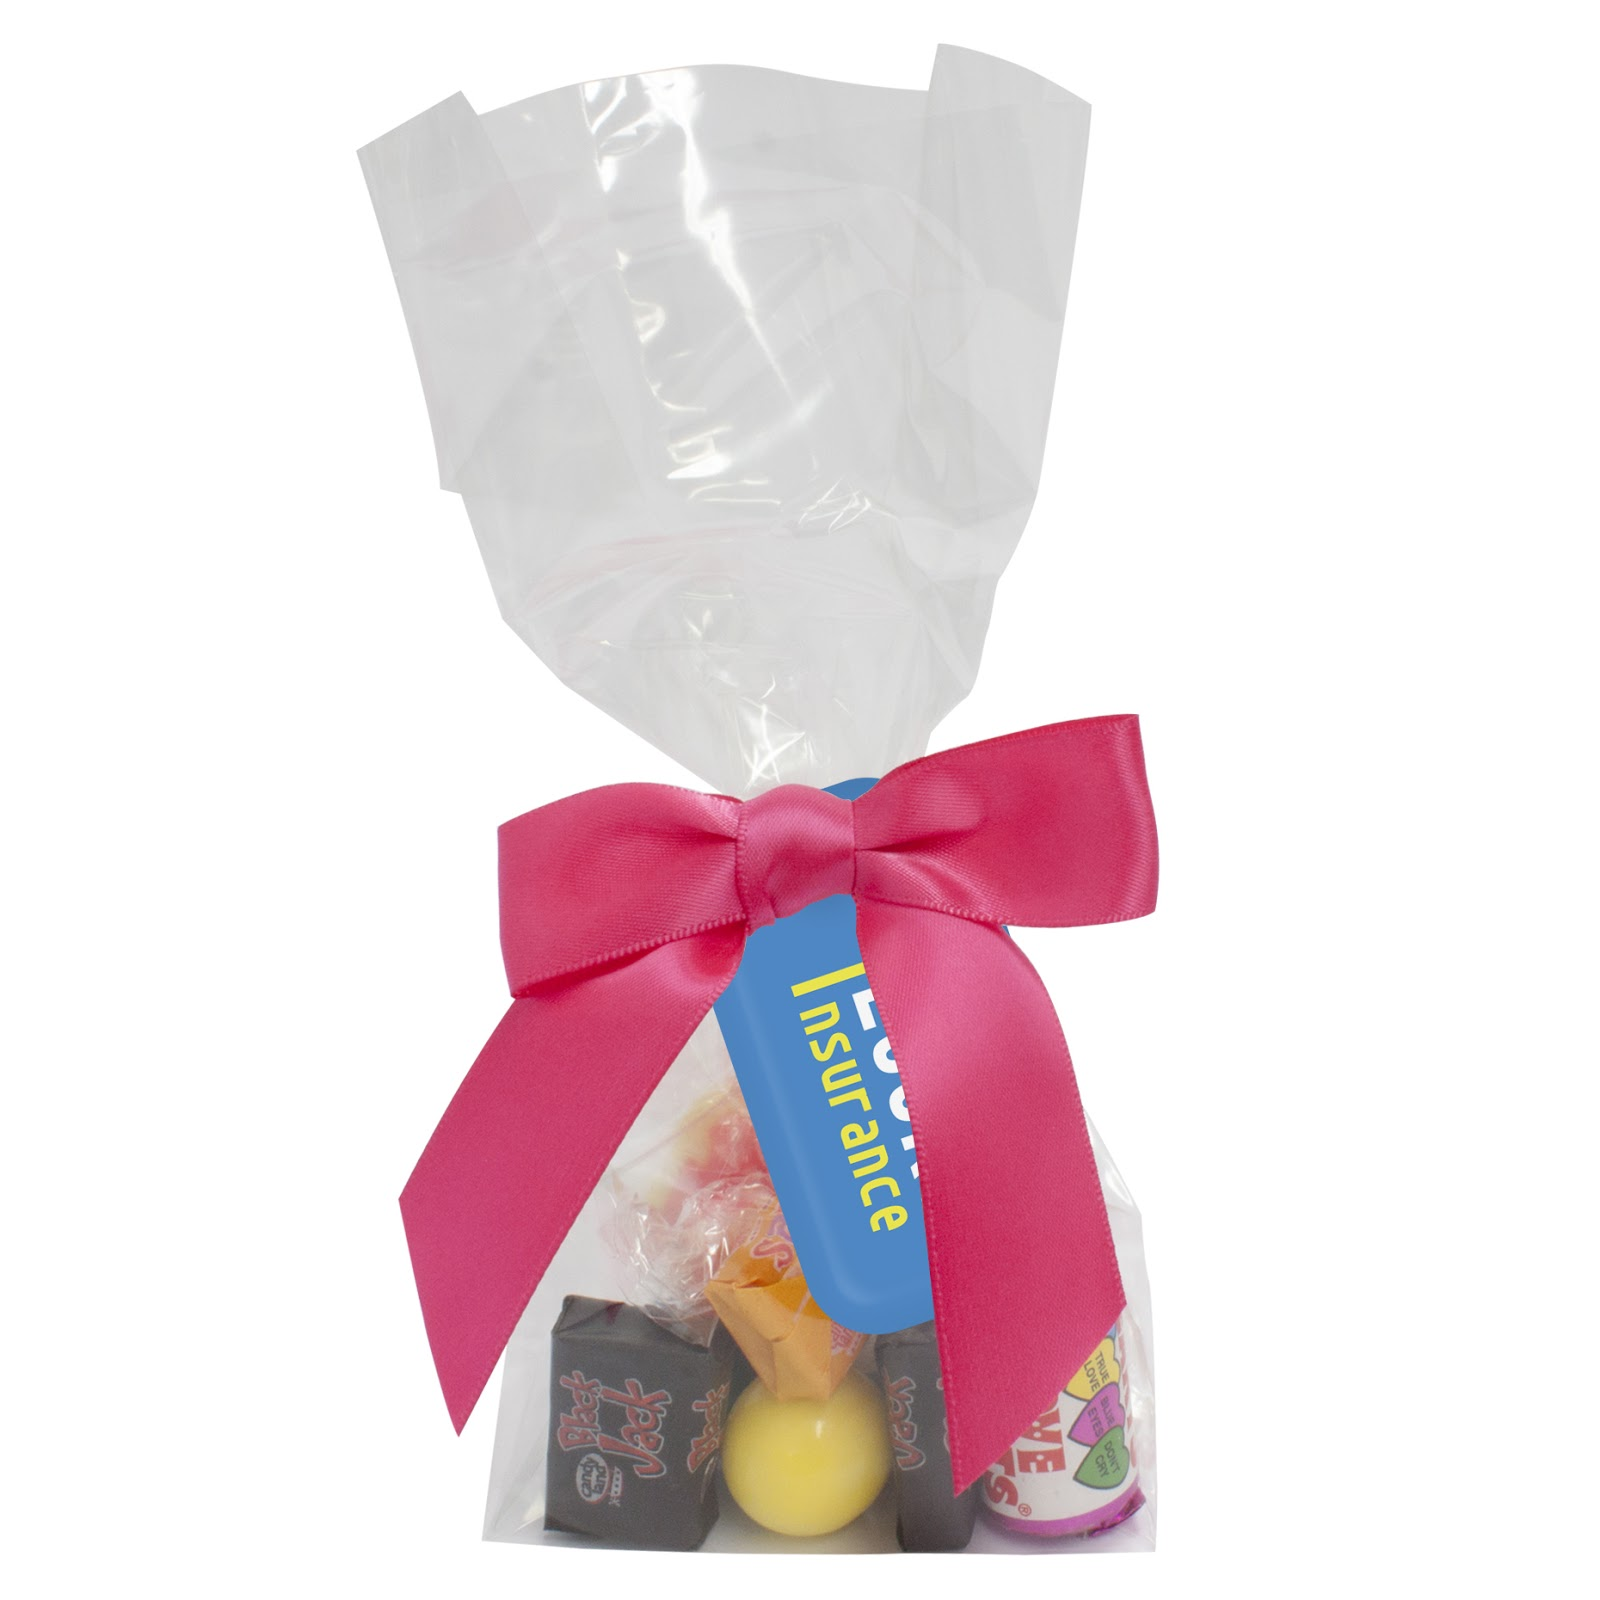 Sweet Filled Gift Bags with Printed Labels